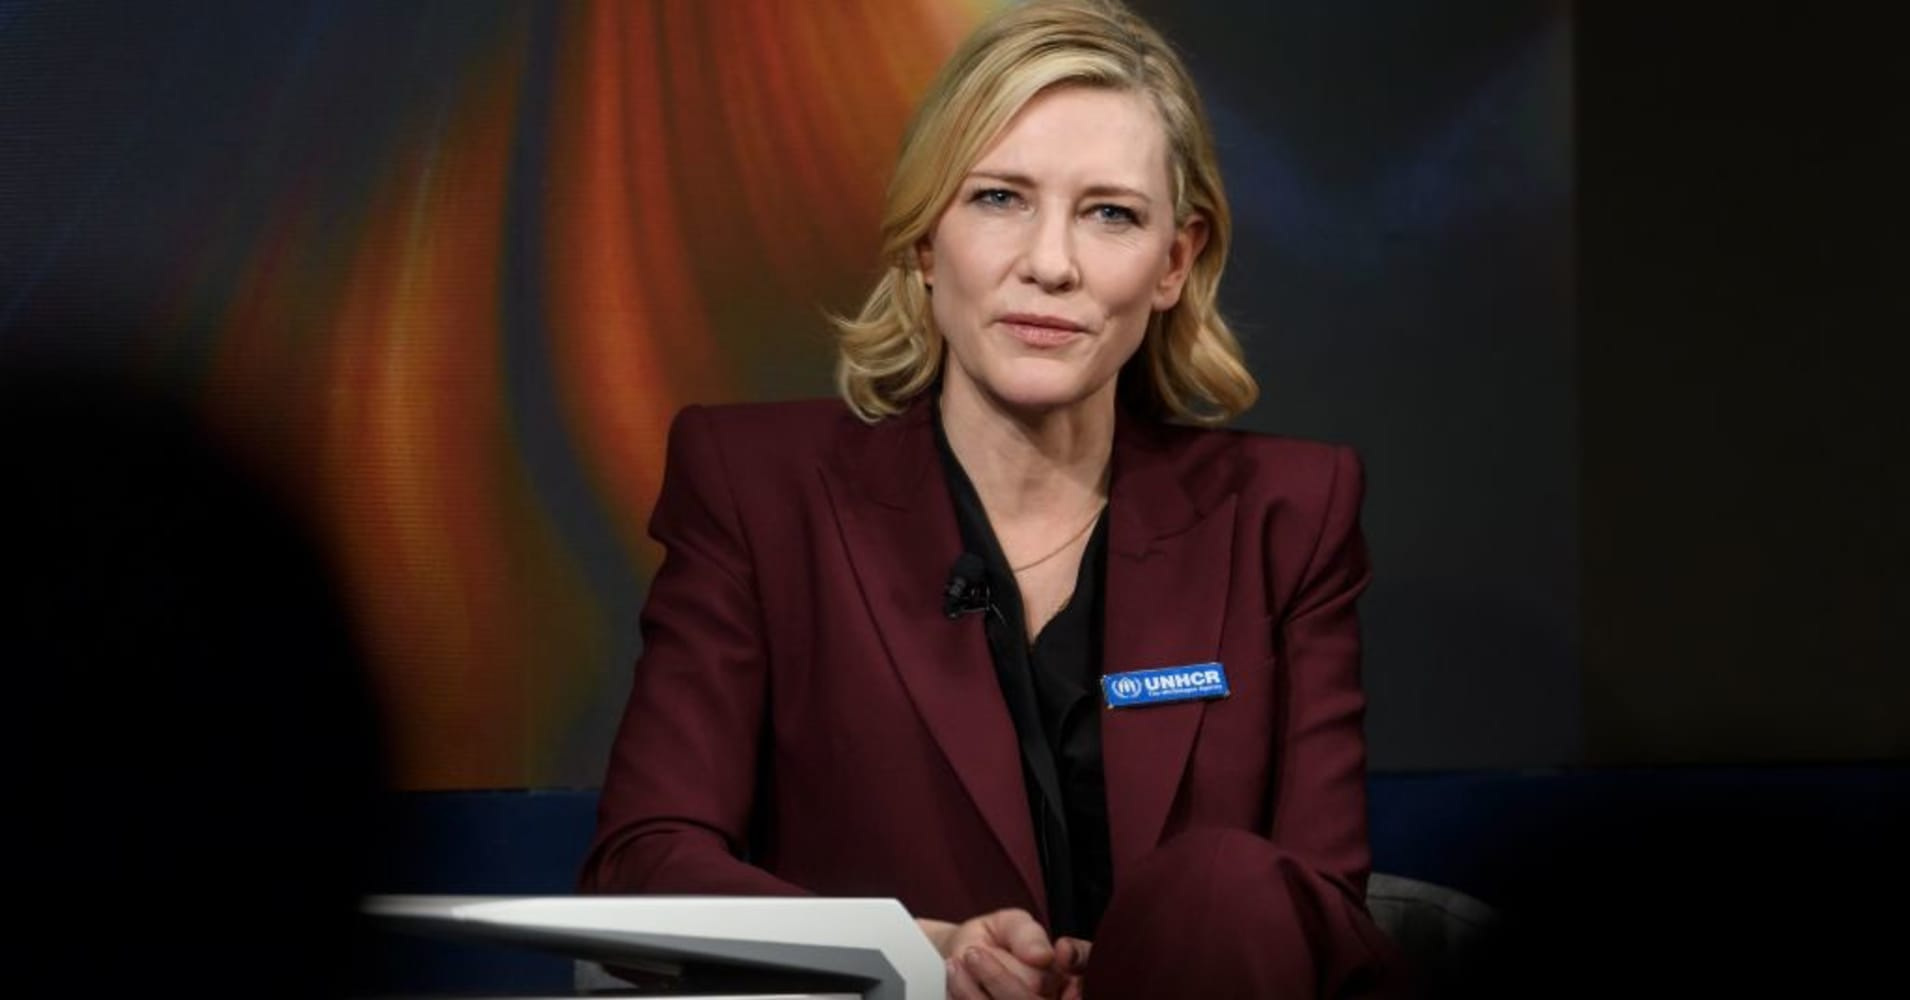 Cate Blanchett on being a UNHCR Goodwill ambassador and raising awareness about refugees at Davos